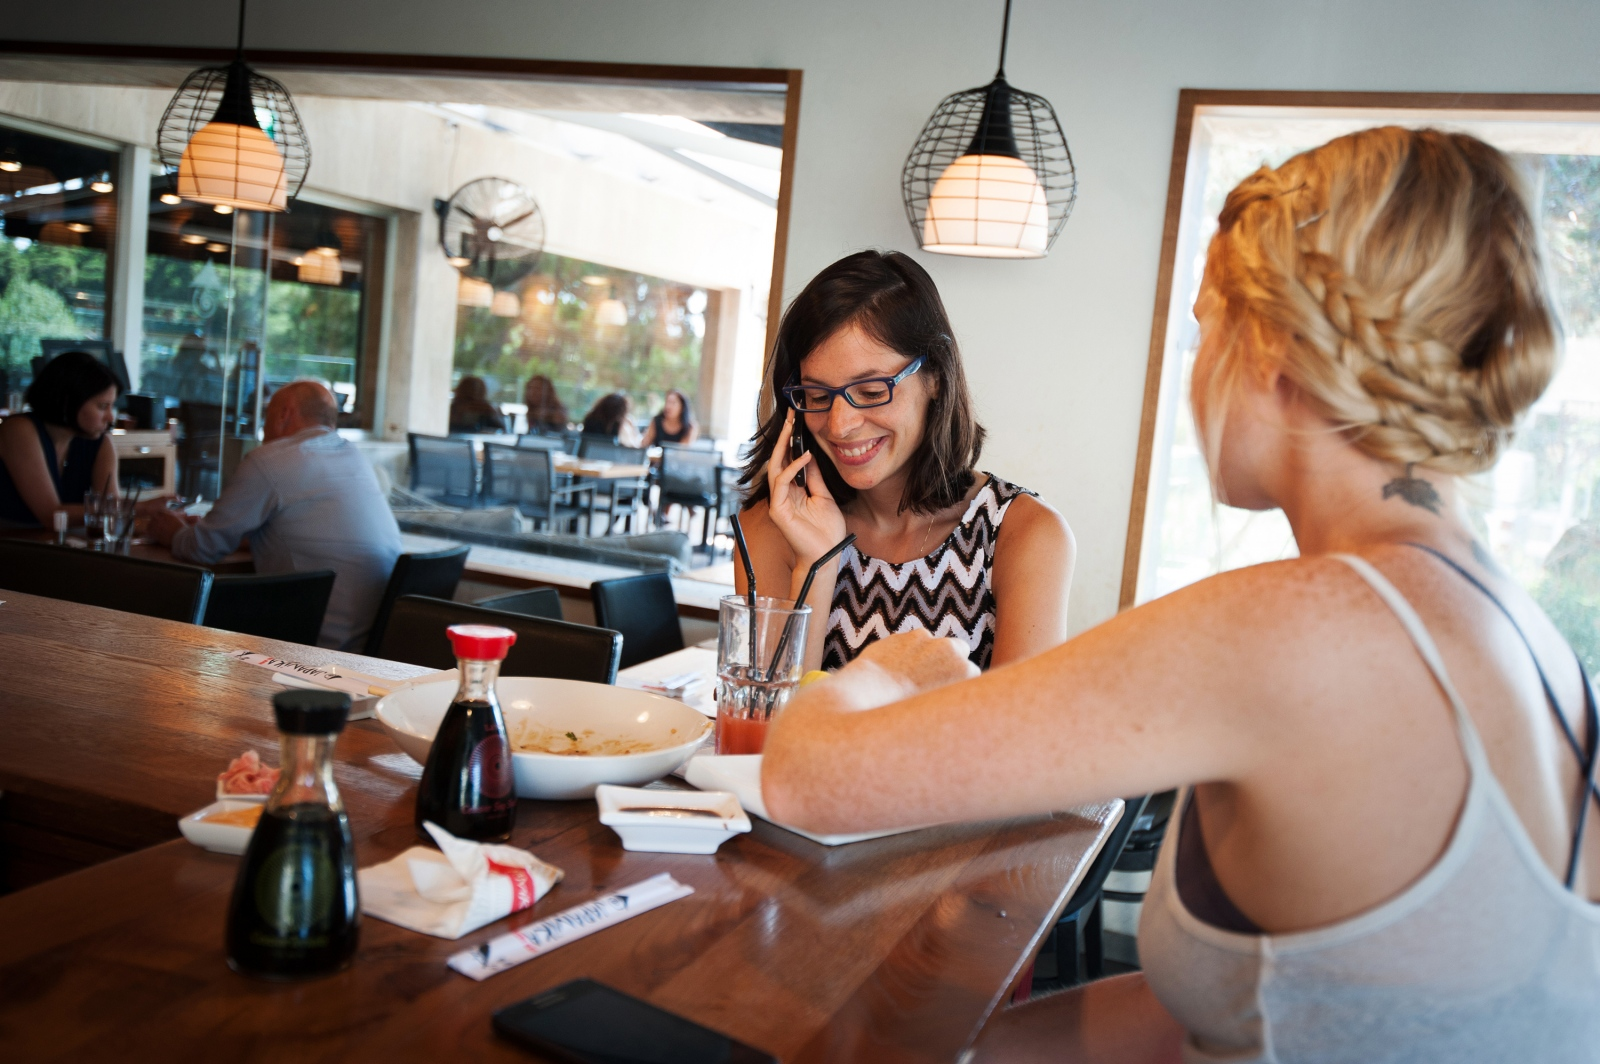 Sapir receives a phone call from her mother while out for sushi with her best friend, Lital, 22. The girls, busy with demanding school schedules, try to find time to catch up on boys, exams and look over pictures of puppies on their phones.